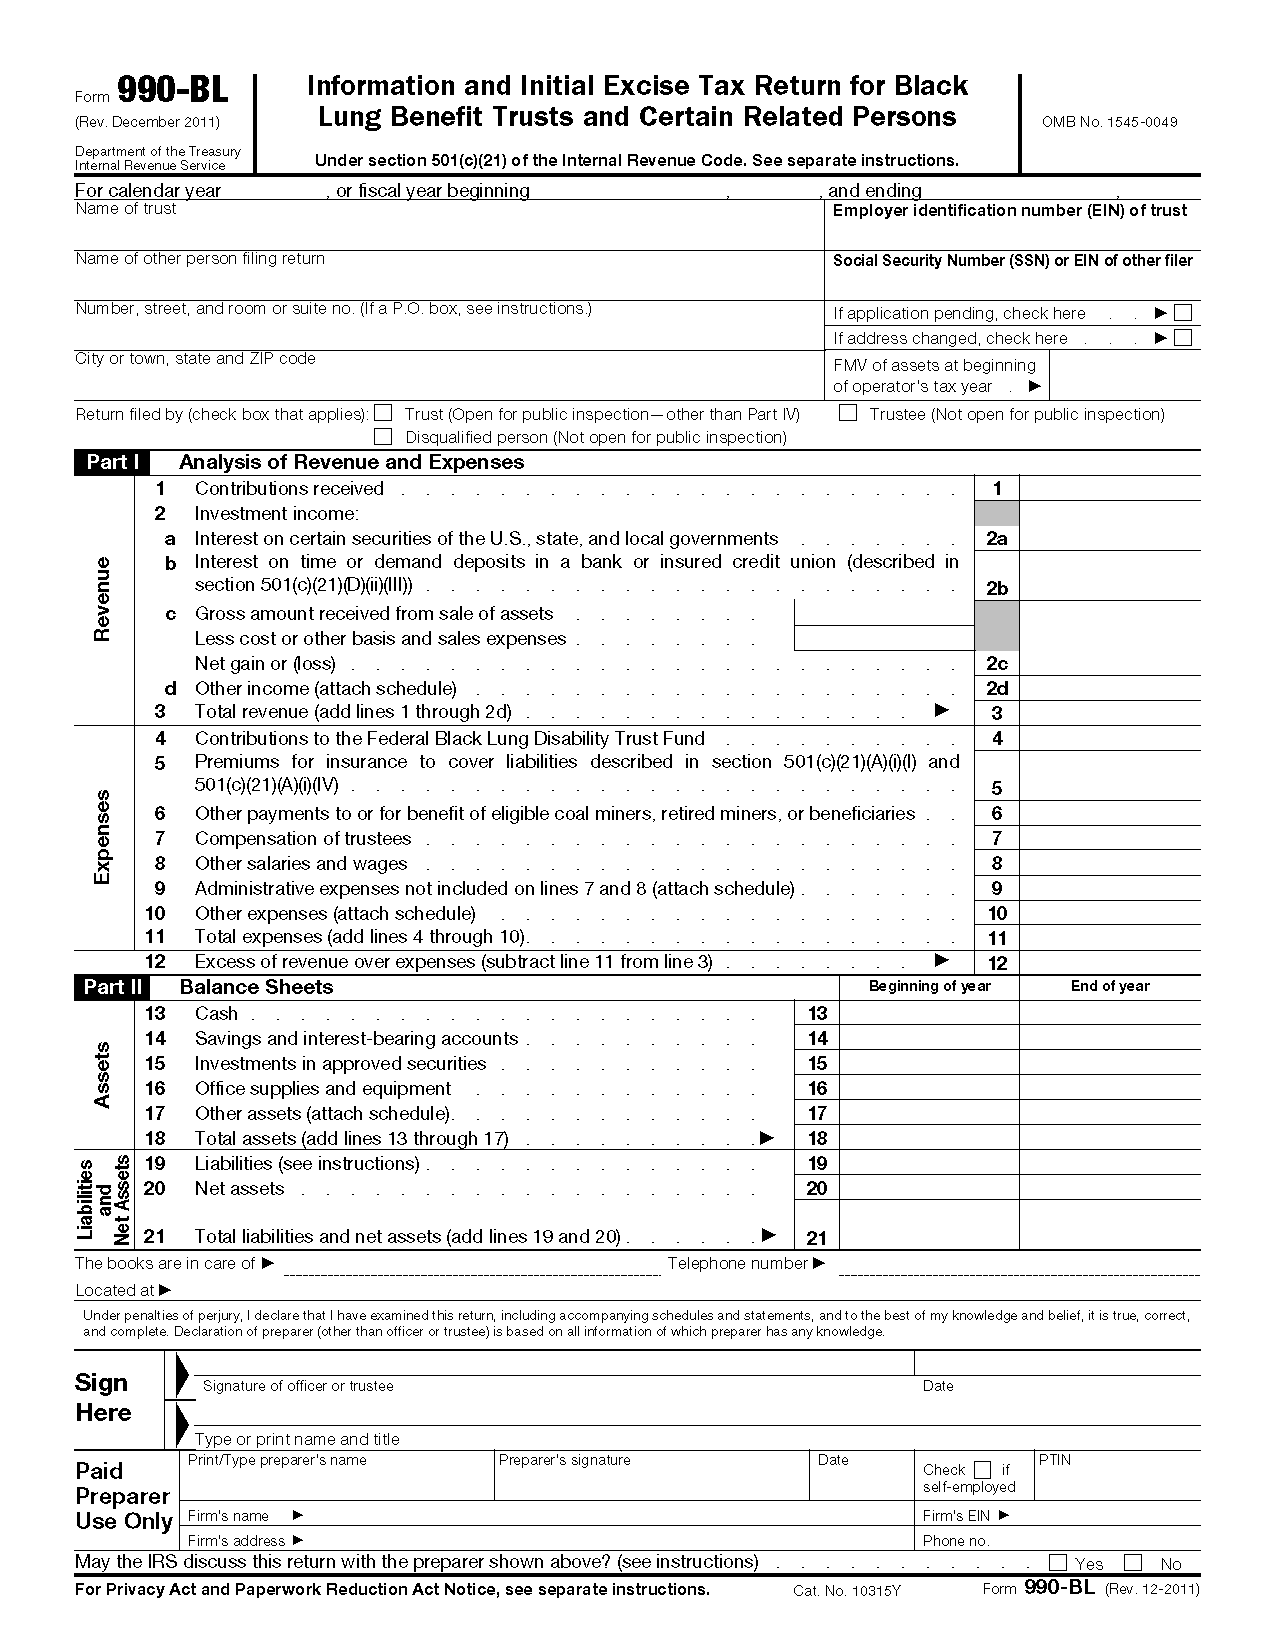 Form 990 Bl Information And Initial Excise Tax Return For Black Lung Benefit Trusts And Certain Related Persons